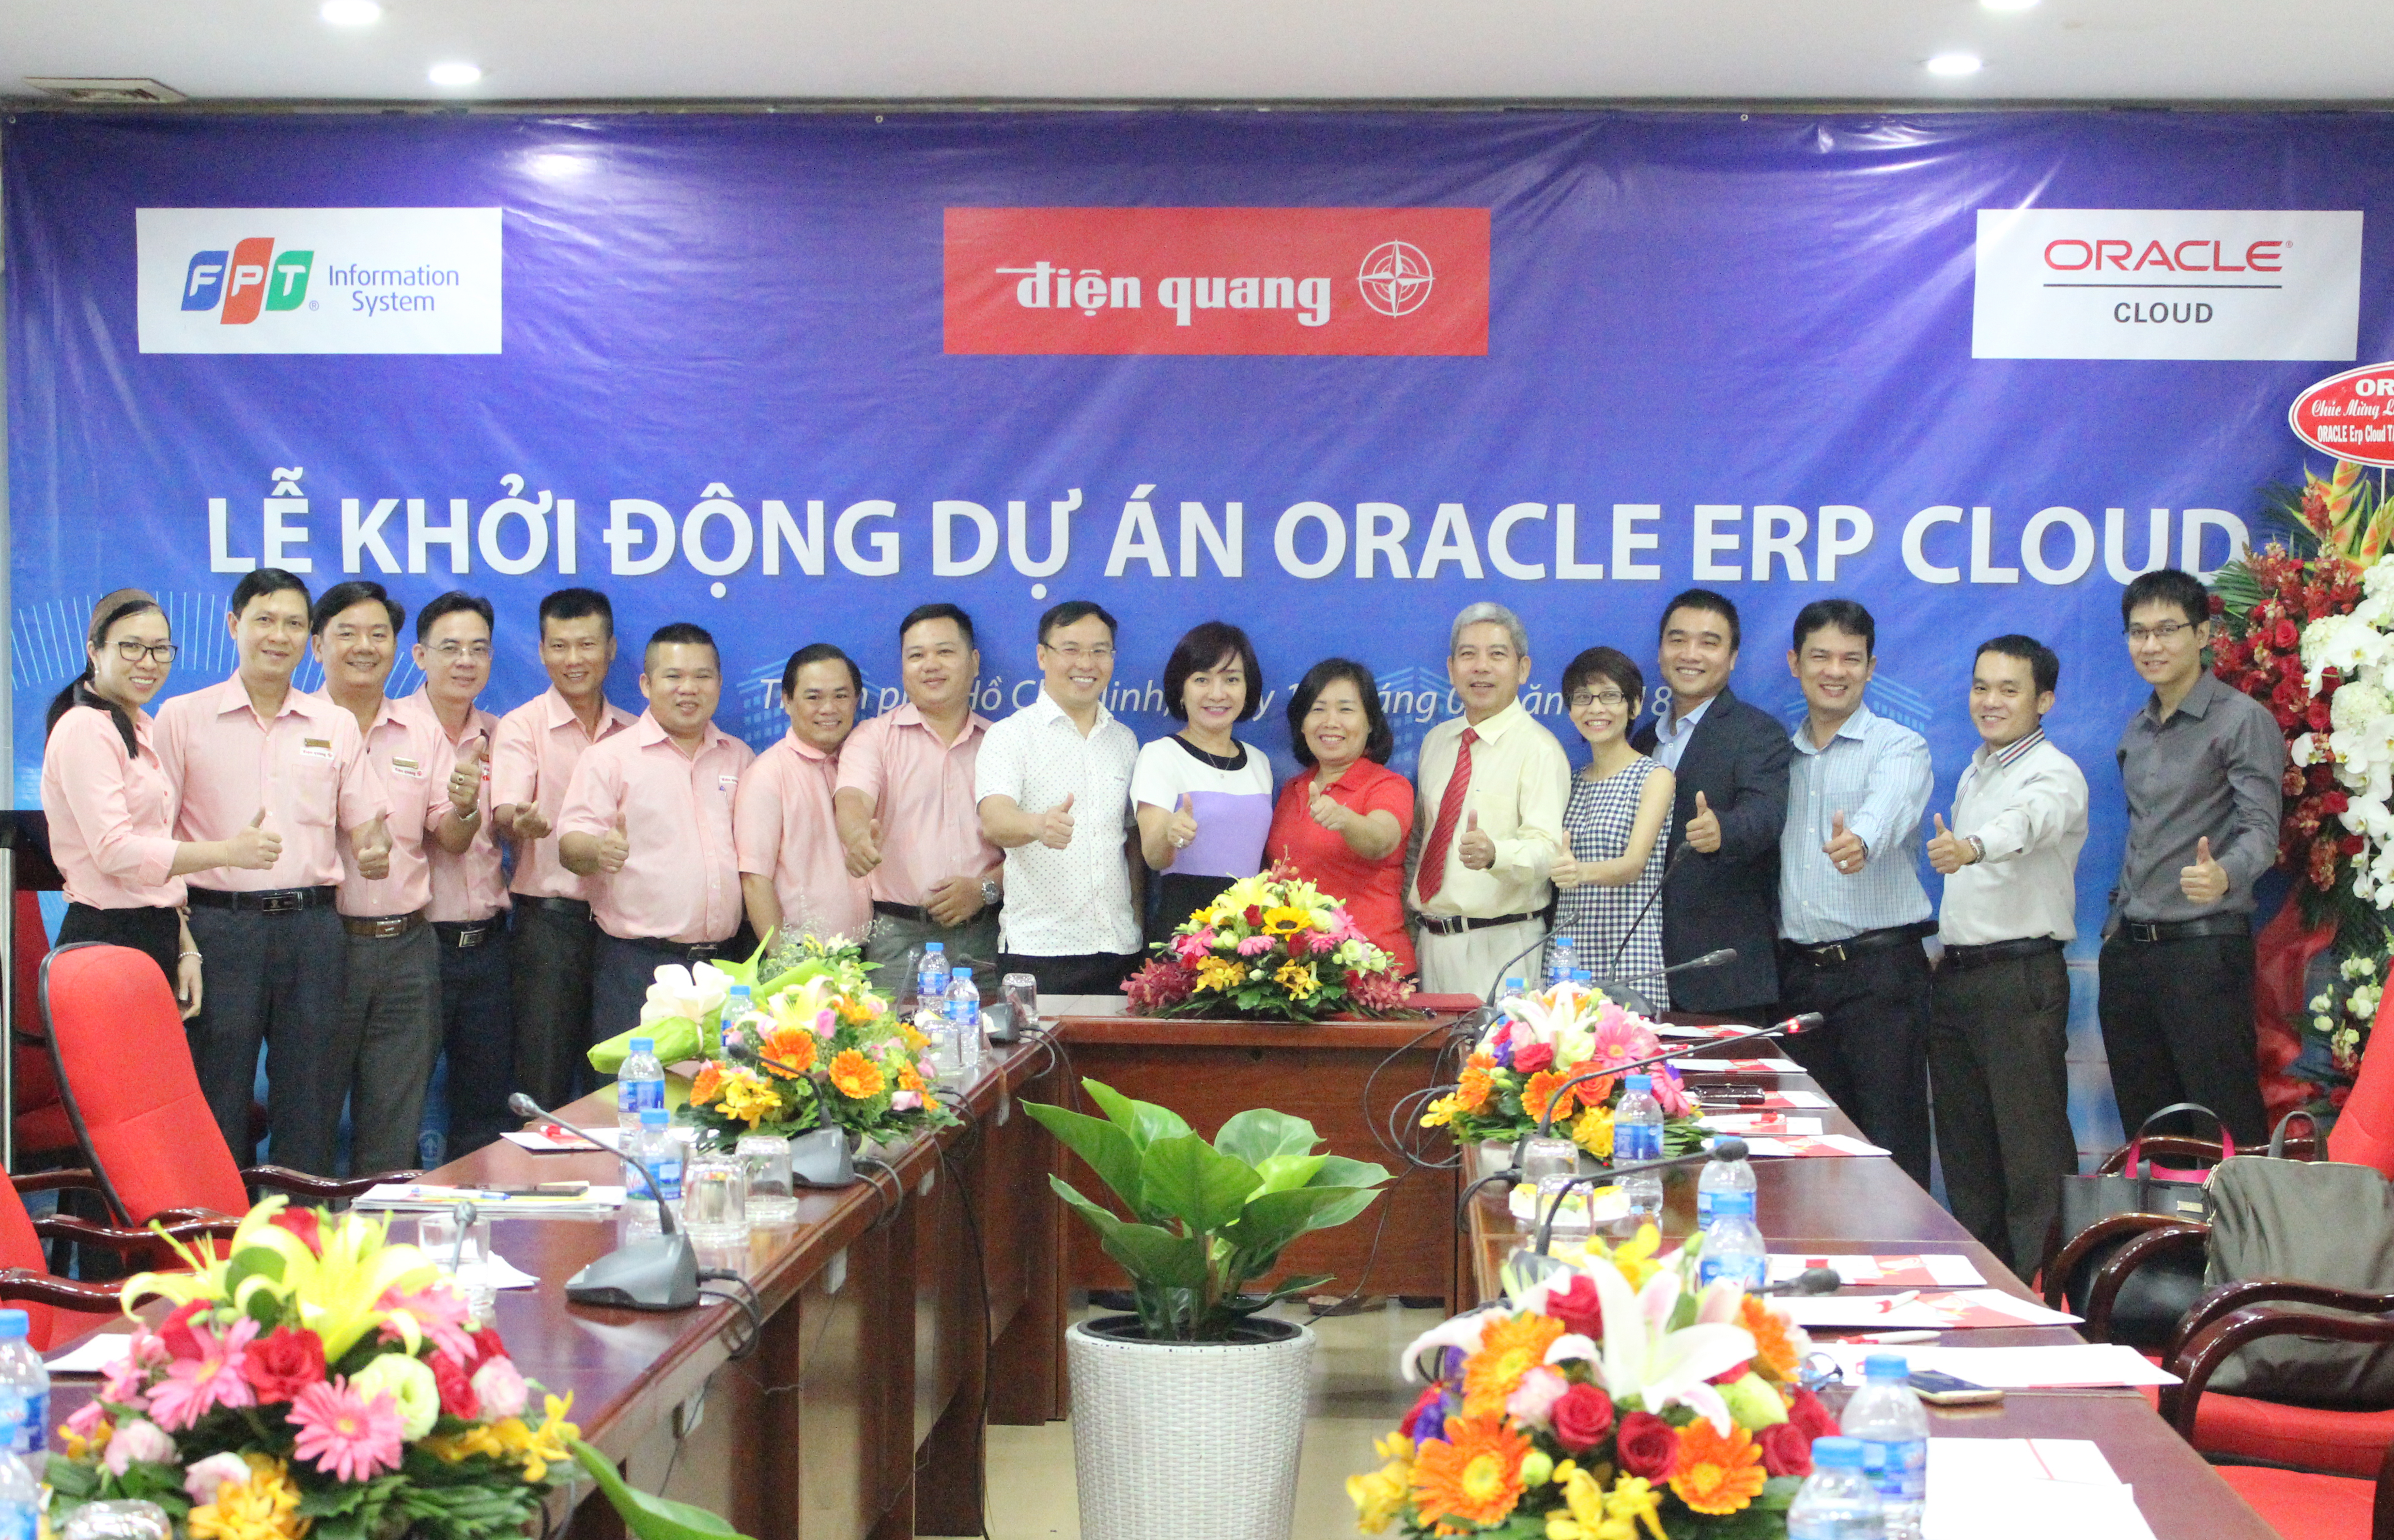 FPT IS deploys Oracle ERP Cloud system for Dien Quang